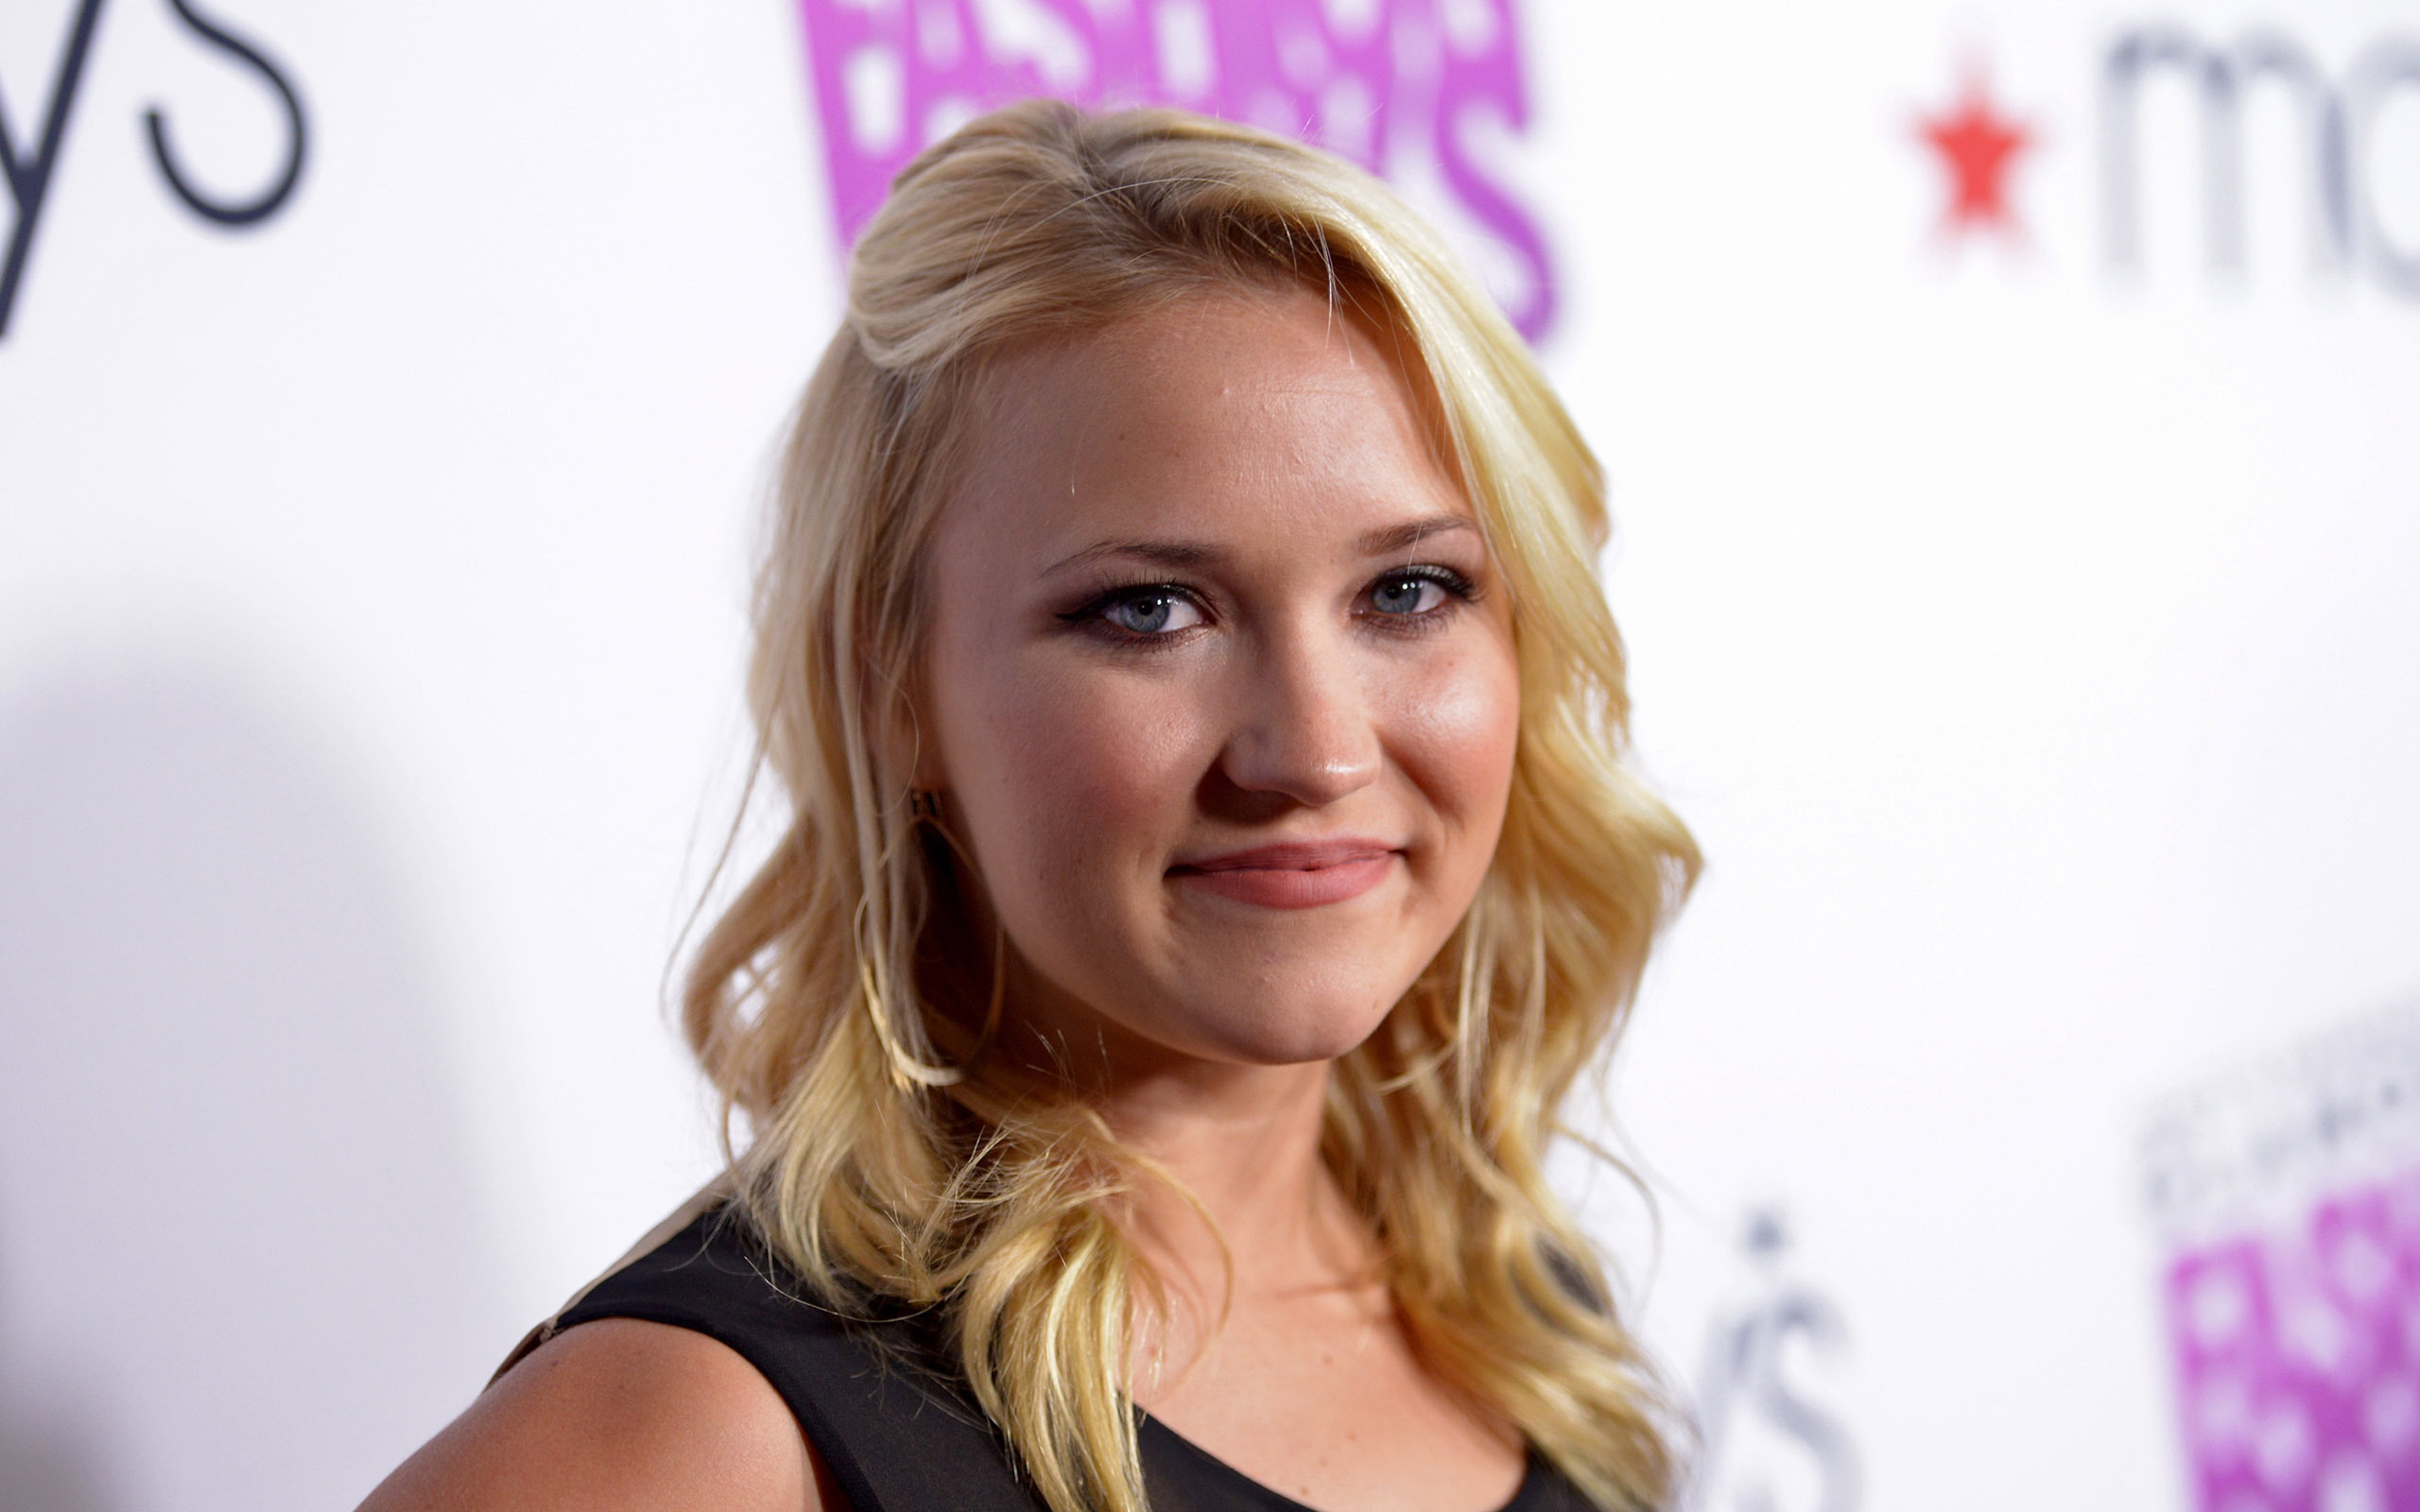 emily osment celebrity wallpaper background 60394